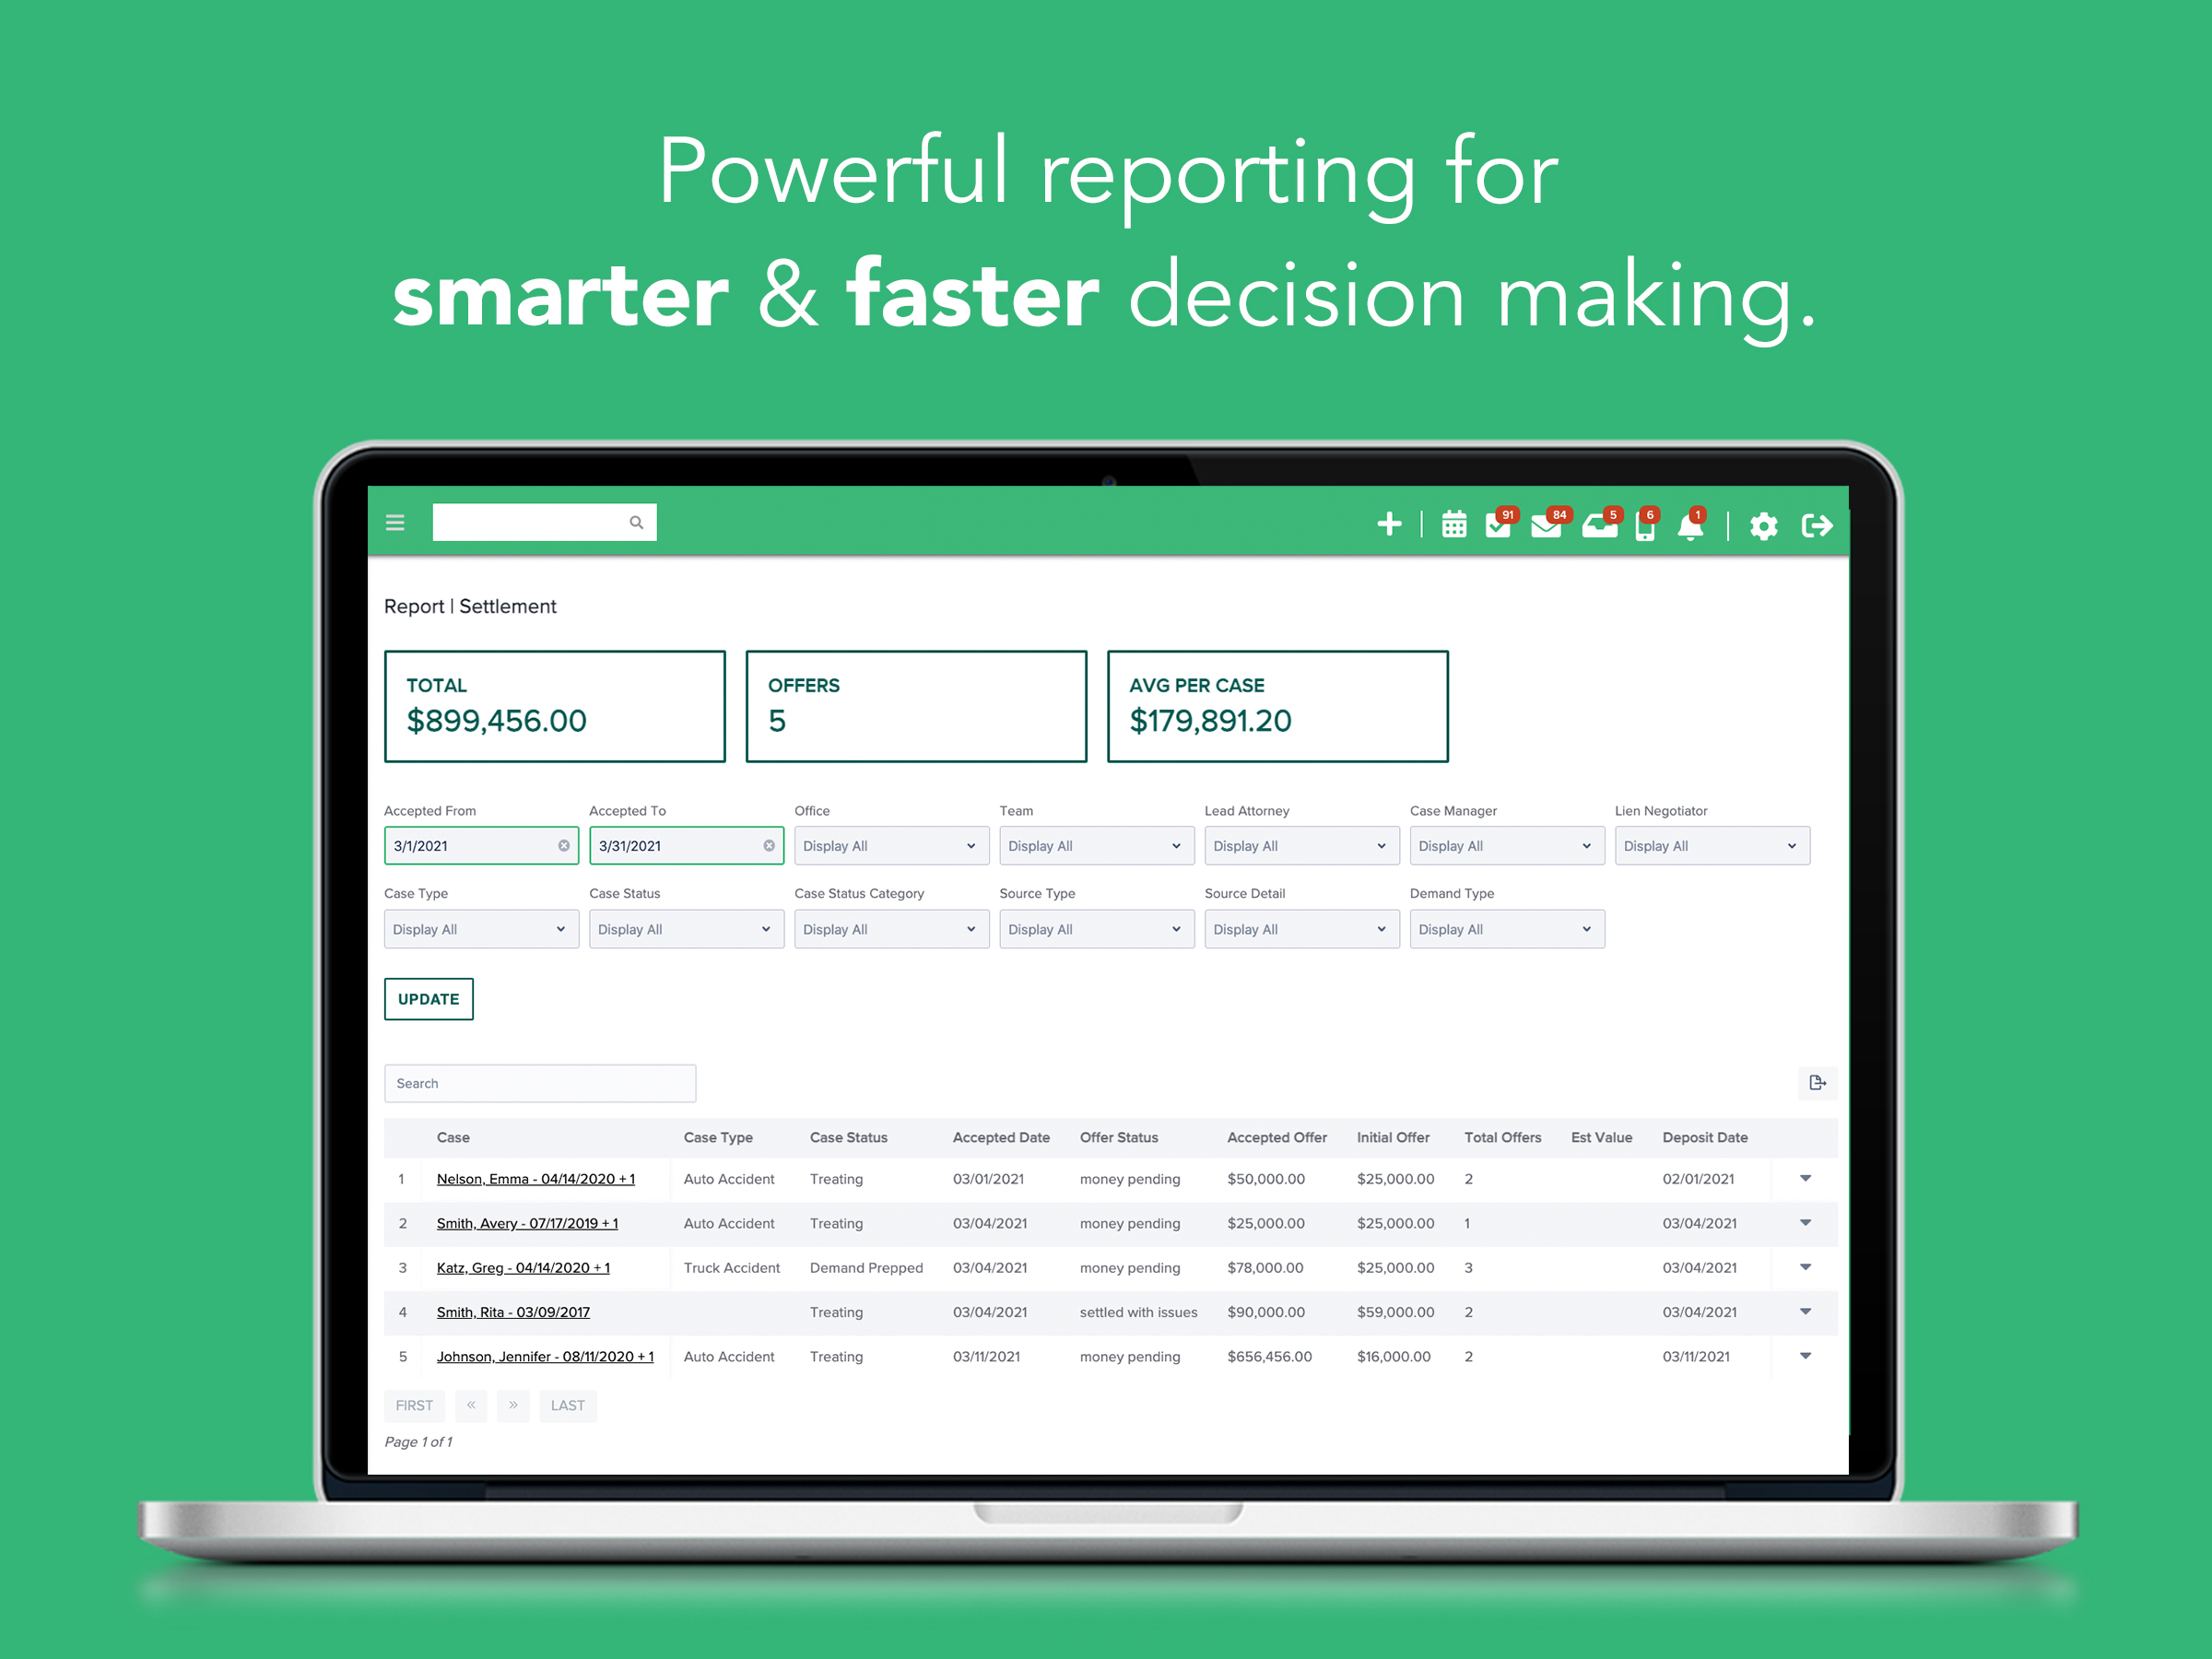 Make better decisions with CASEpeer. We've identified key performance indicators for marketing, intake, client communication, medical requests, settlement, negotiations, and more.